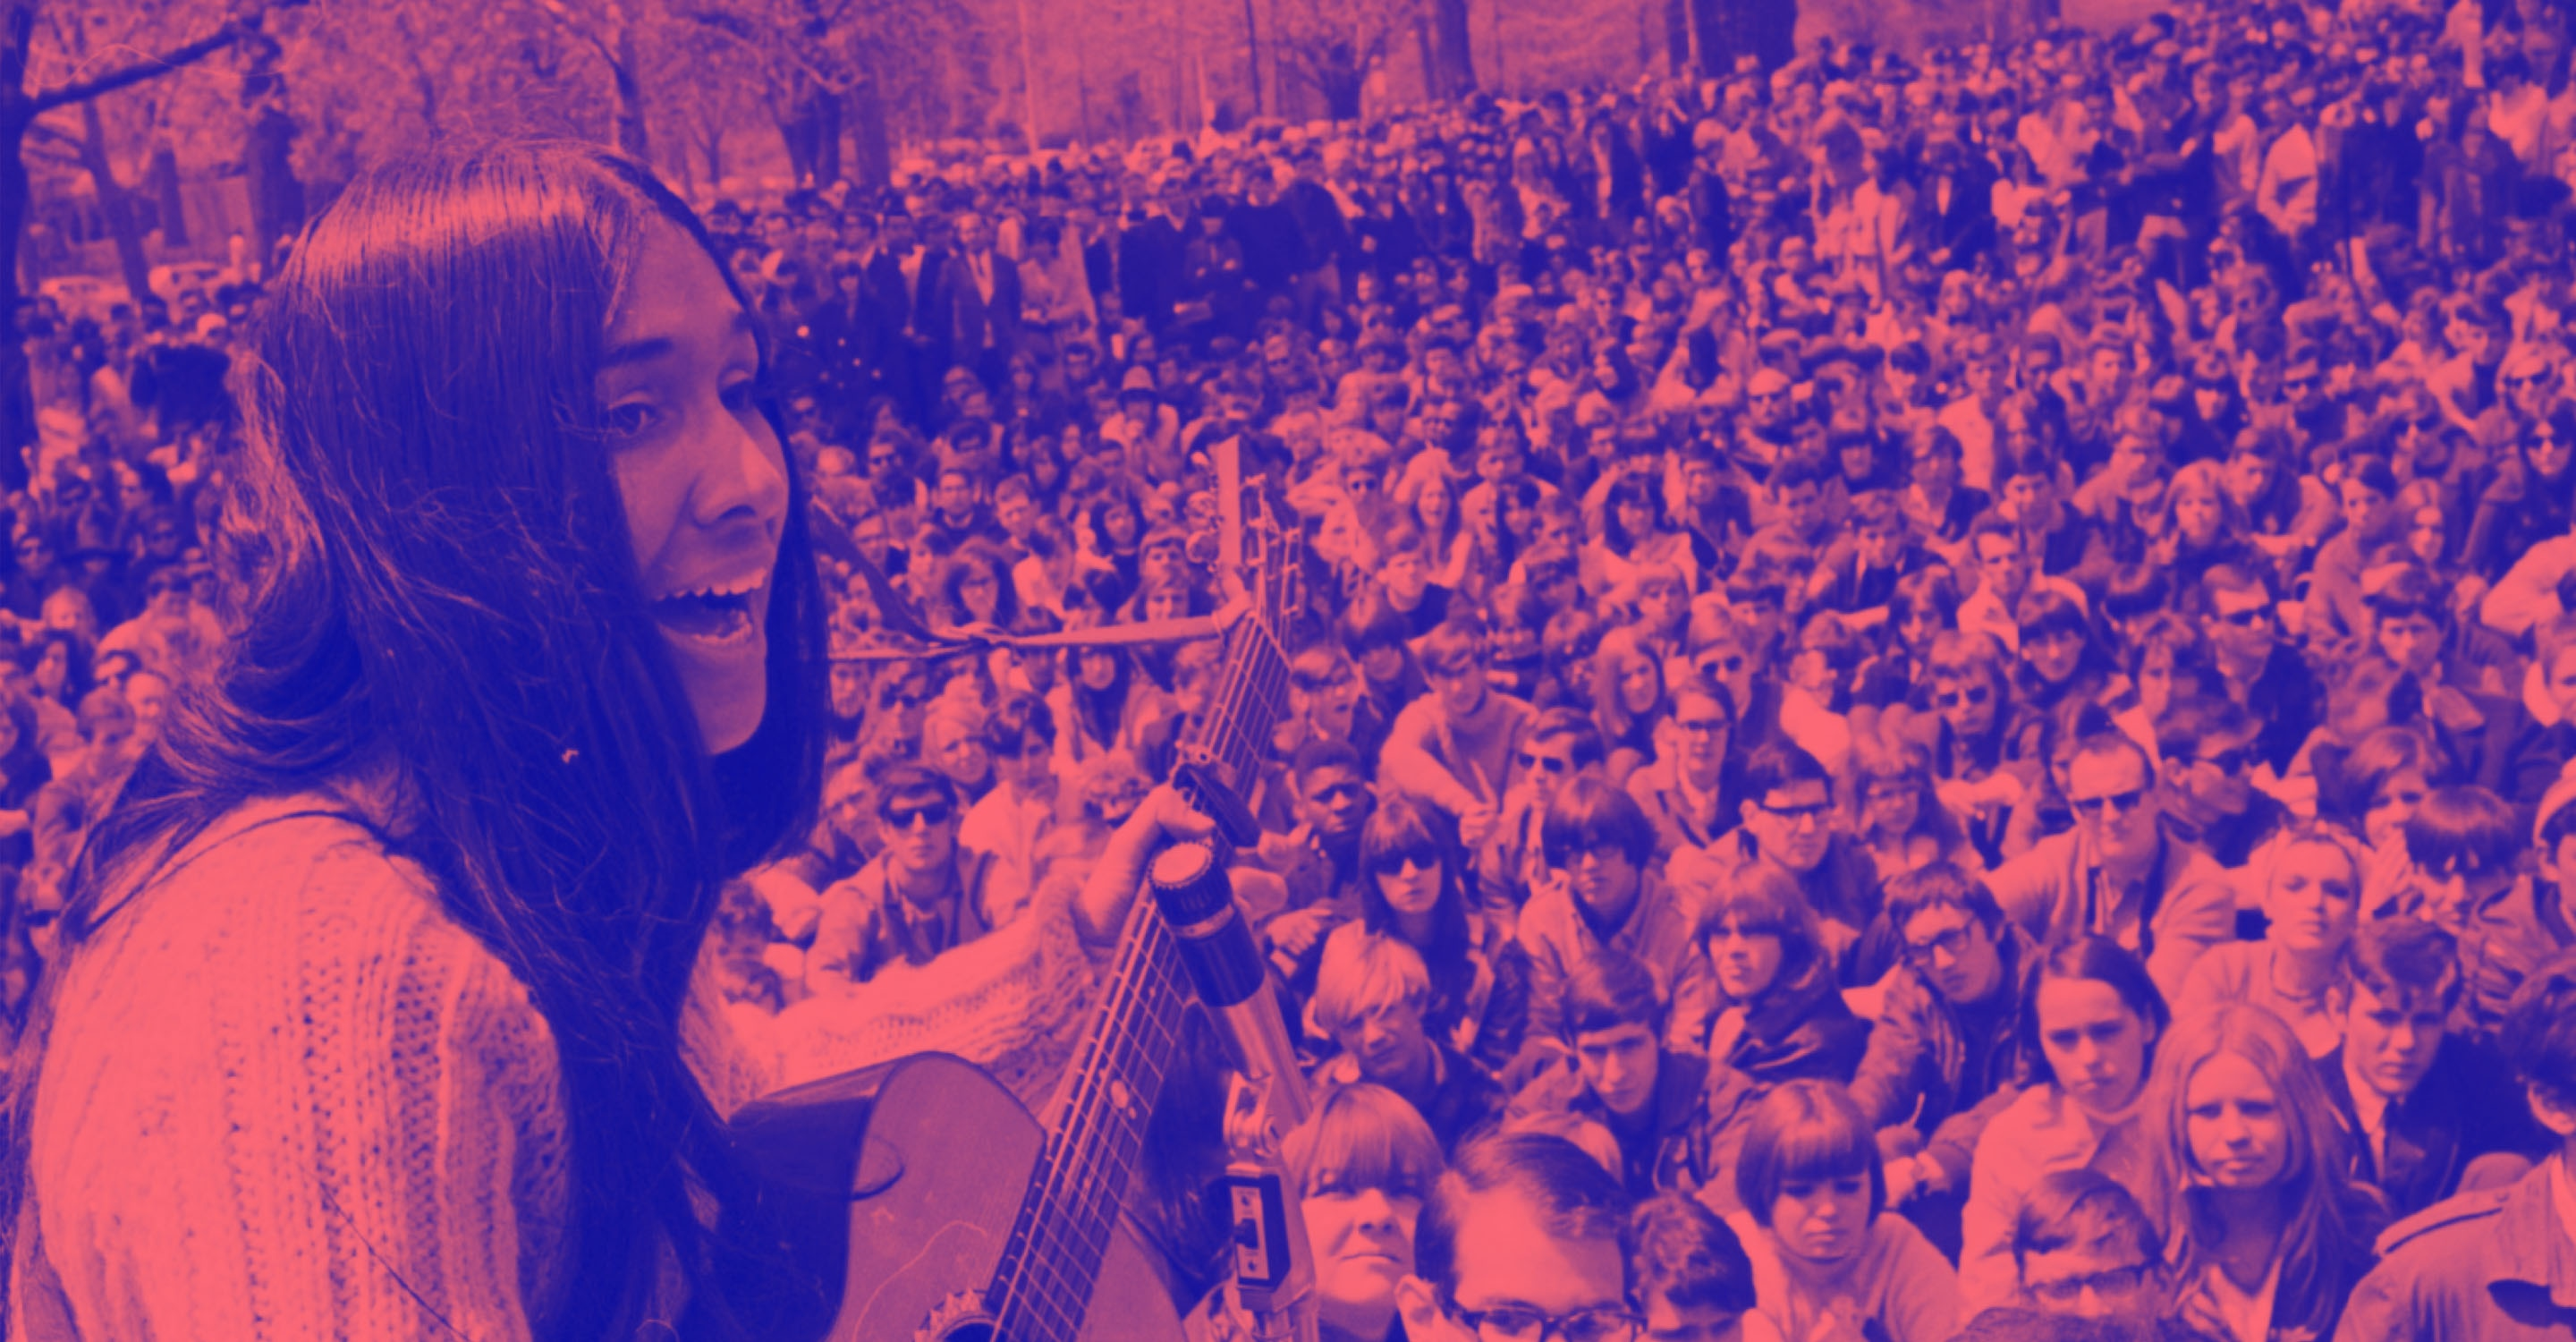 A woman with long hair playing acoustic guitar to a large outdoor crowd.